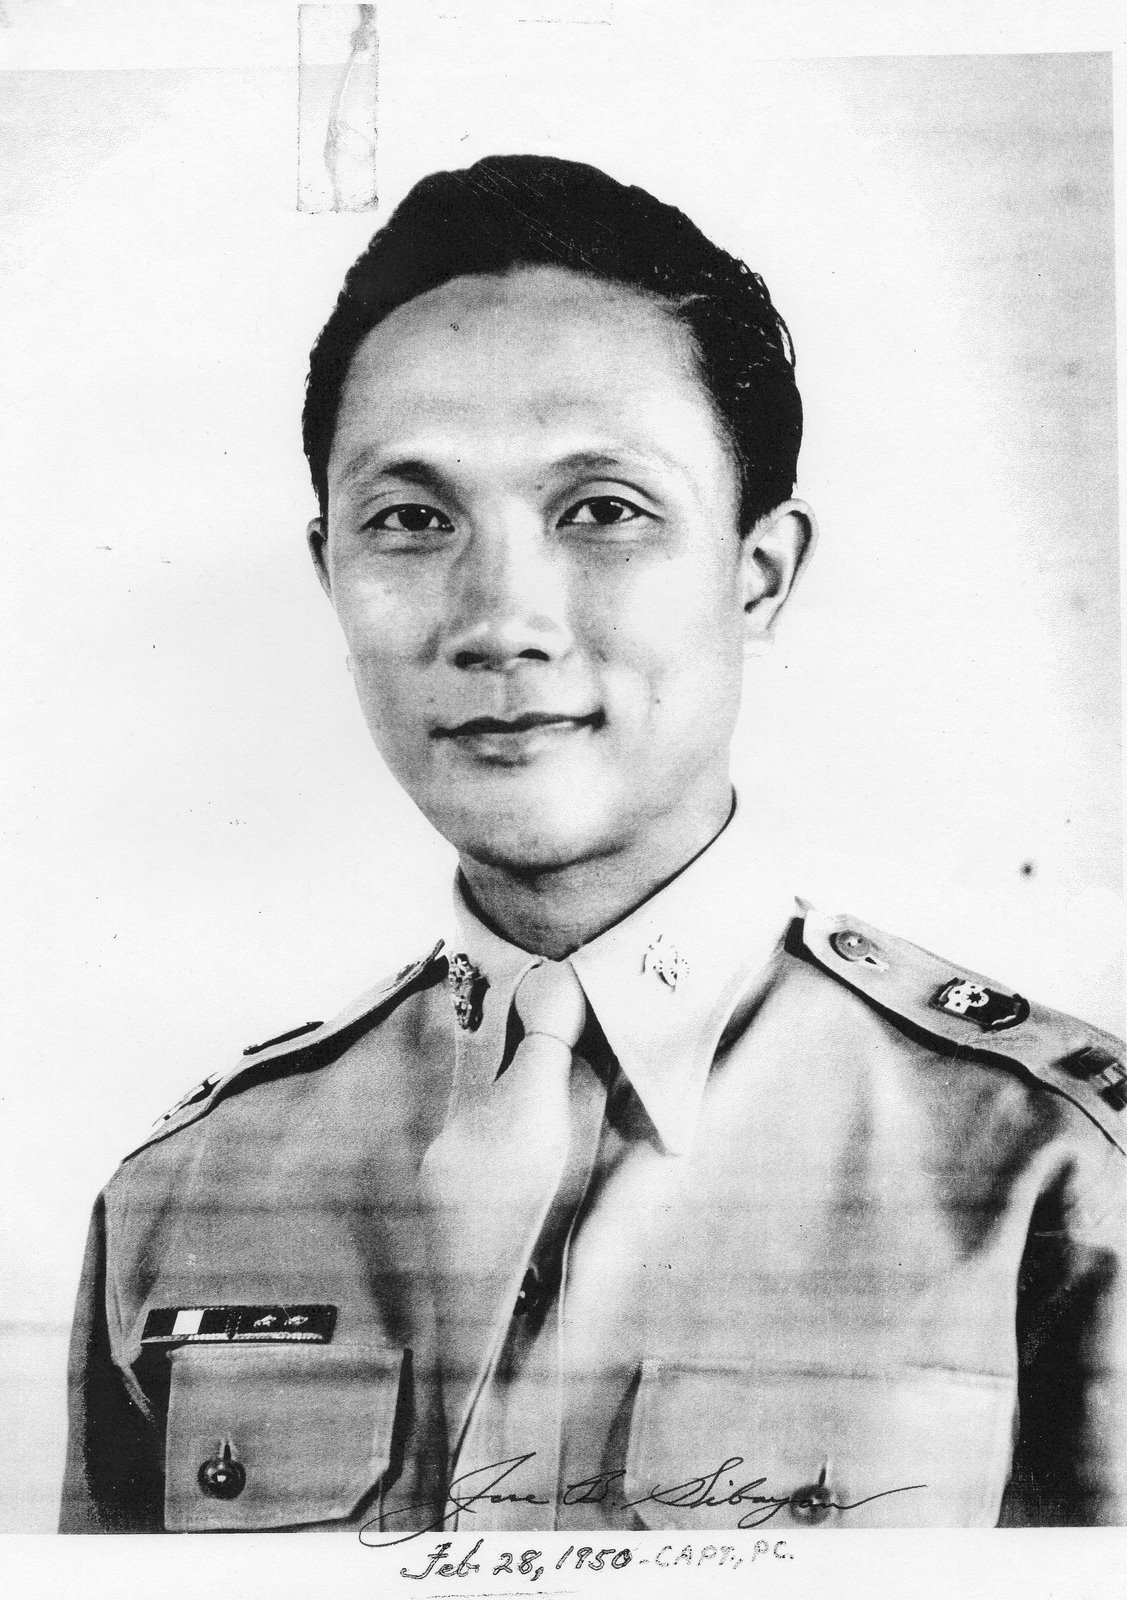 Jose B Sibayan in 1950